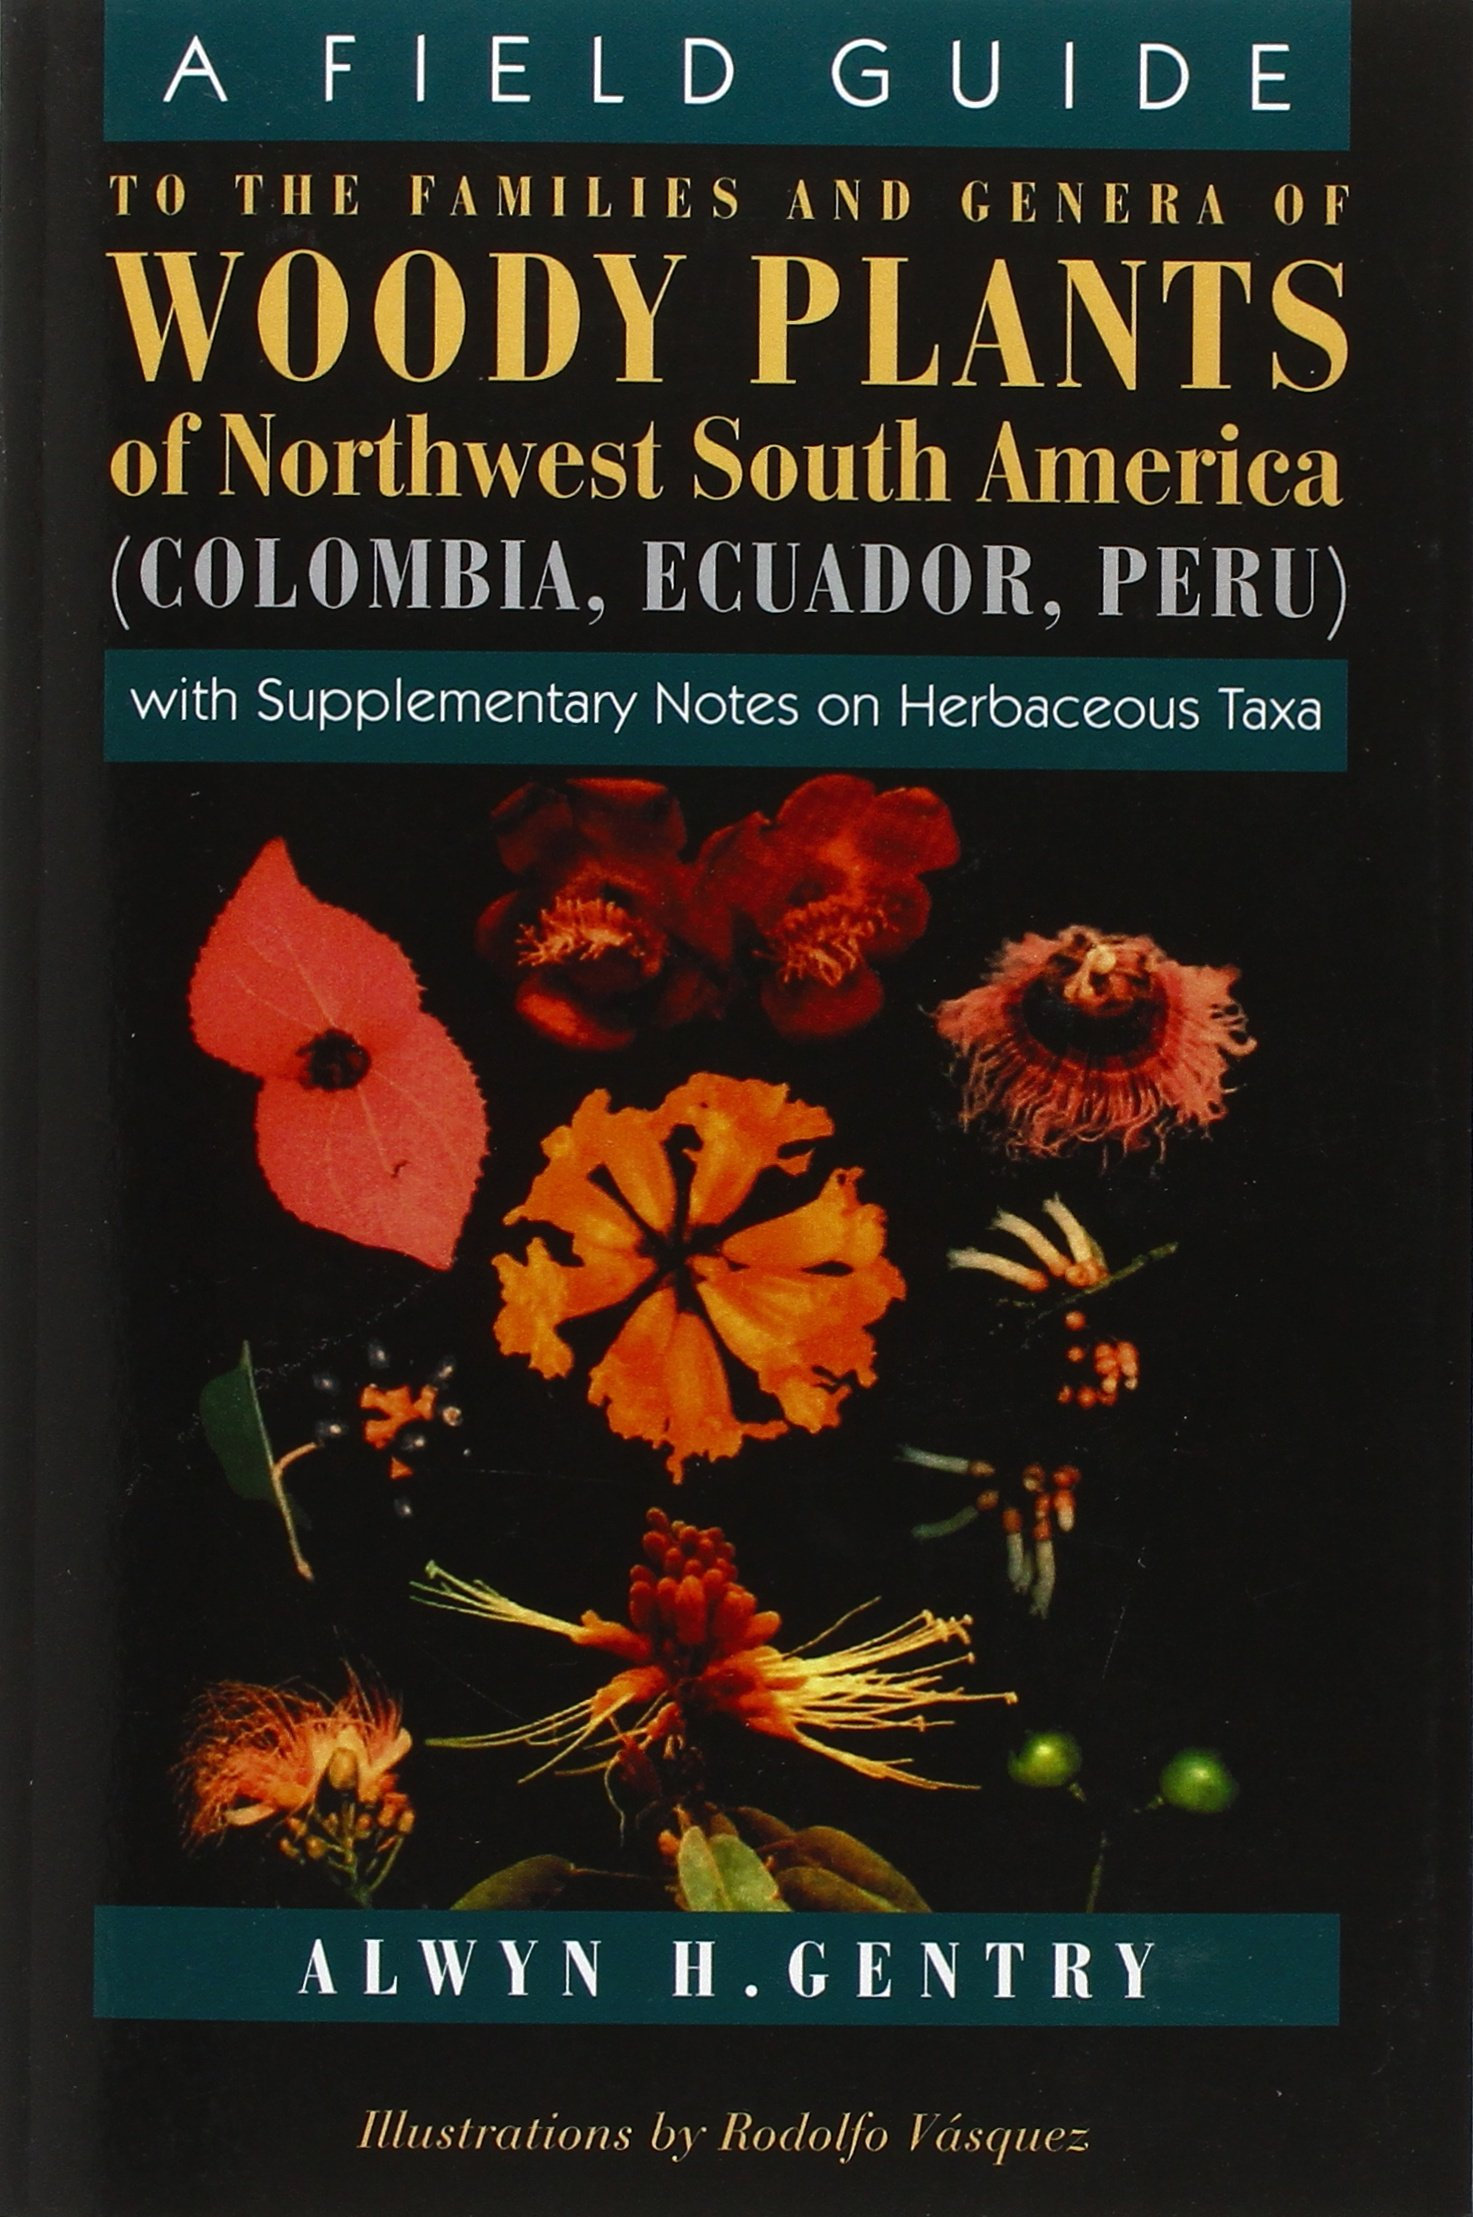 A Field Guide to the Families and Genera of Woody Plants of North west South America : (Colombia, Ecuador, Peru) : With Supplementary Notes)